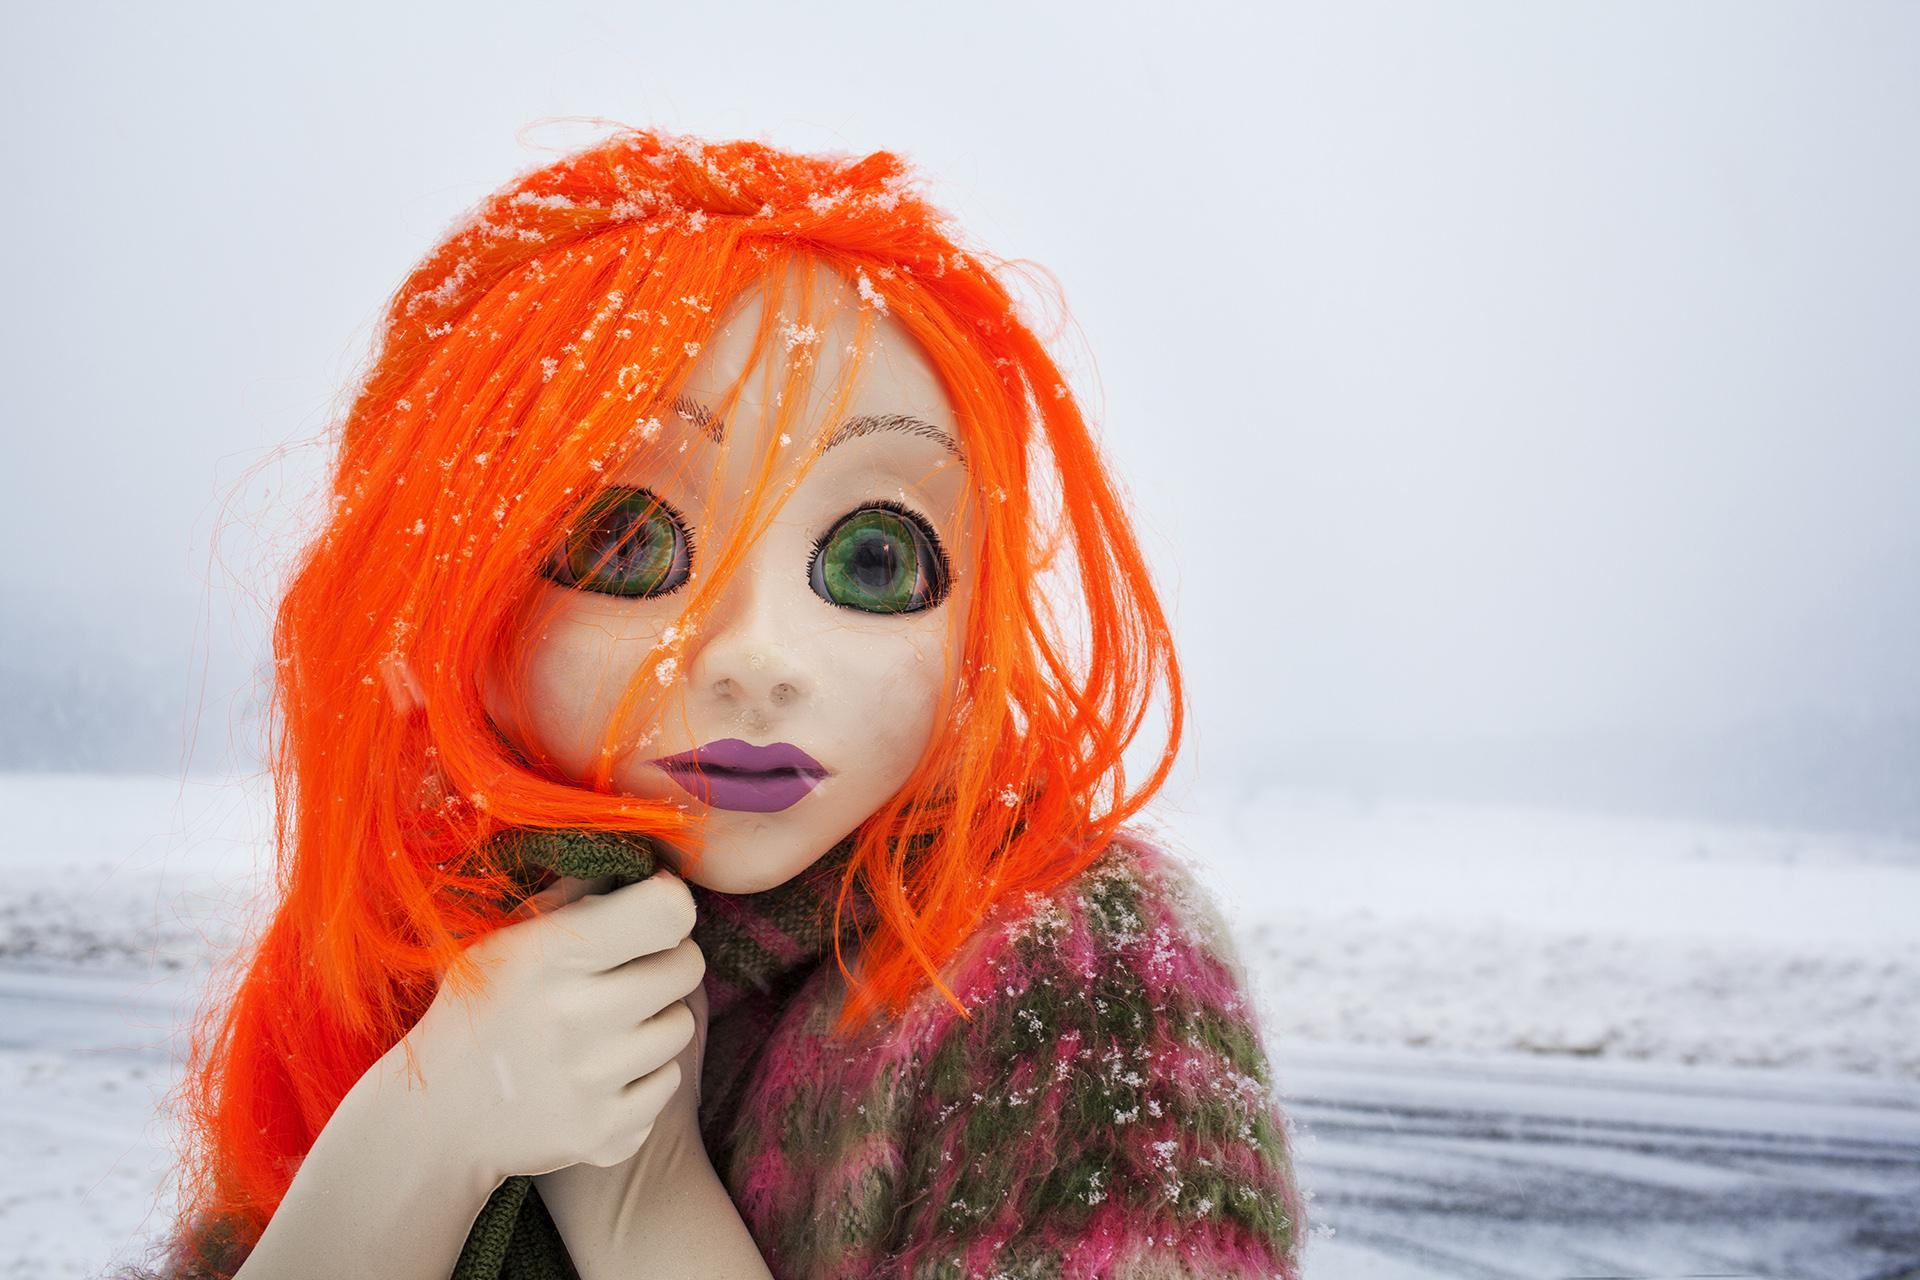 Laurie Simmons, Orange Hair/Snow/Close Up, 2014. Photo: © Laurie Simmons, courtesy of the artist and Salon 94.